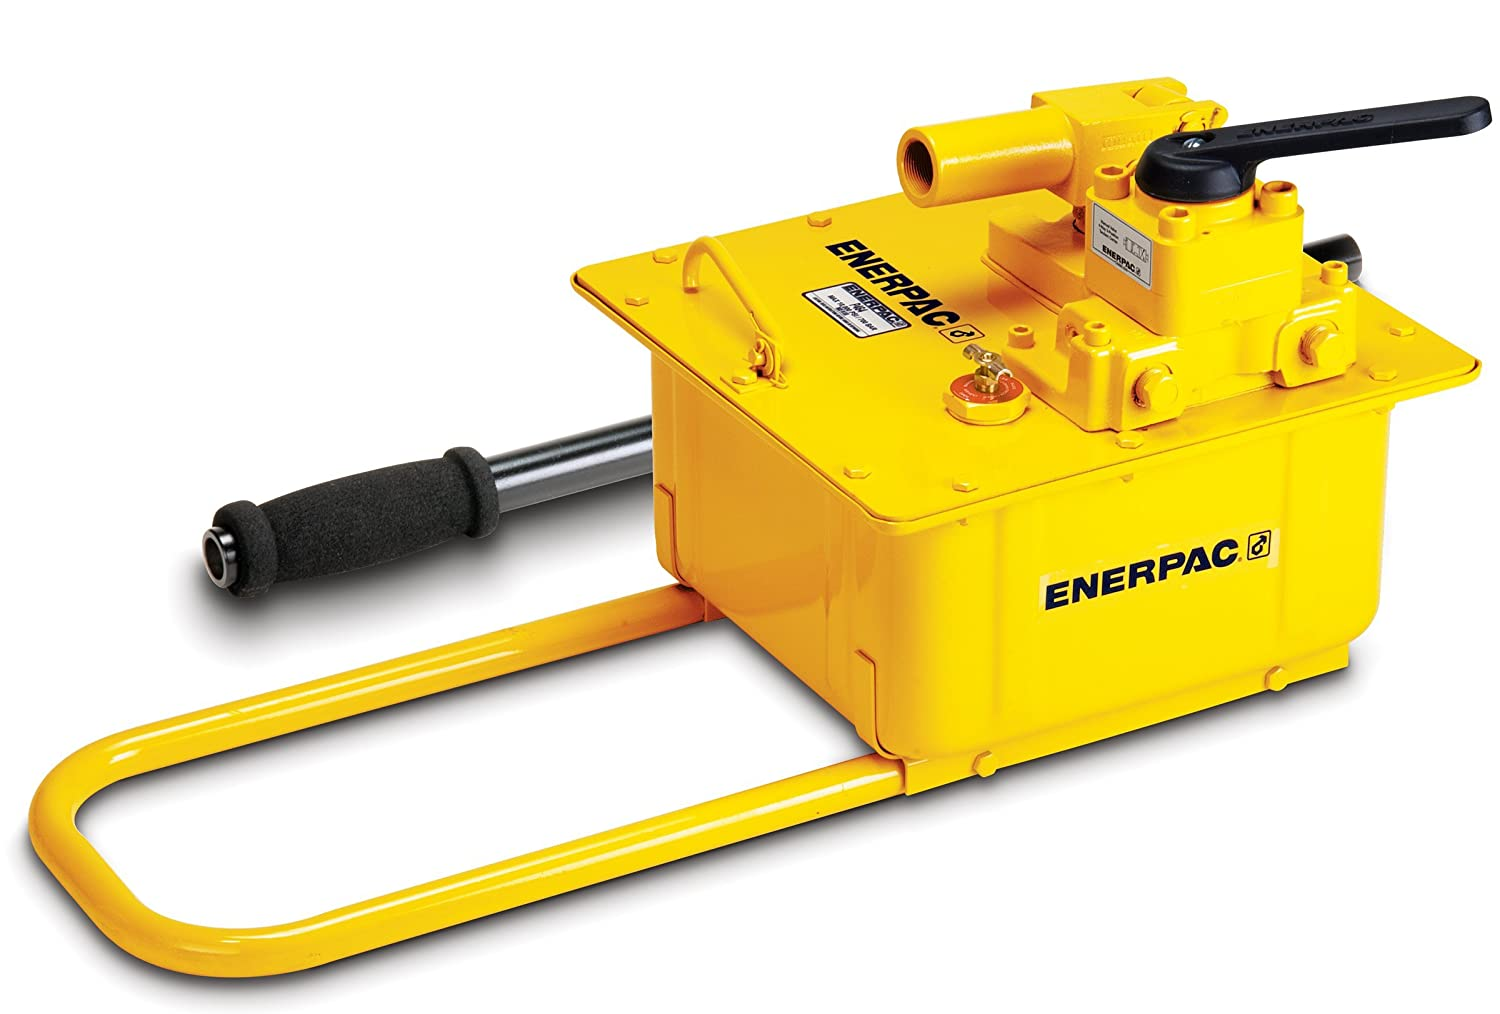 Enerpac P-462 2 Speed Steel Hand Pump with 110 Pound Maximum Handle Effort